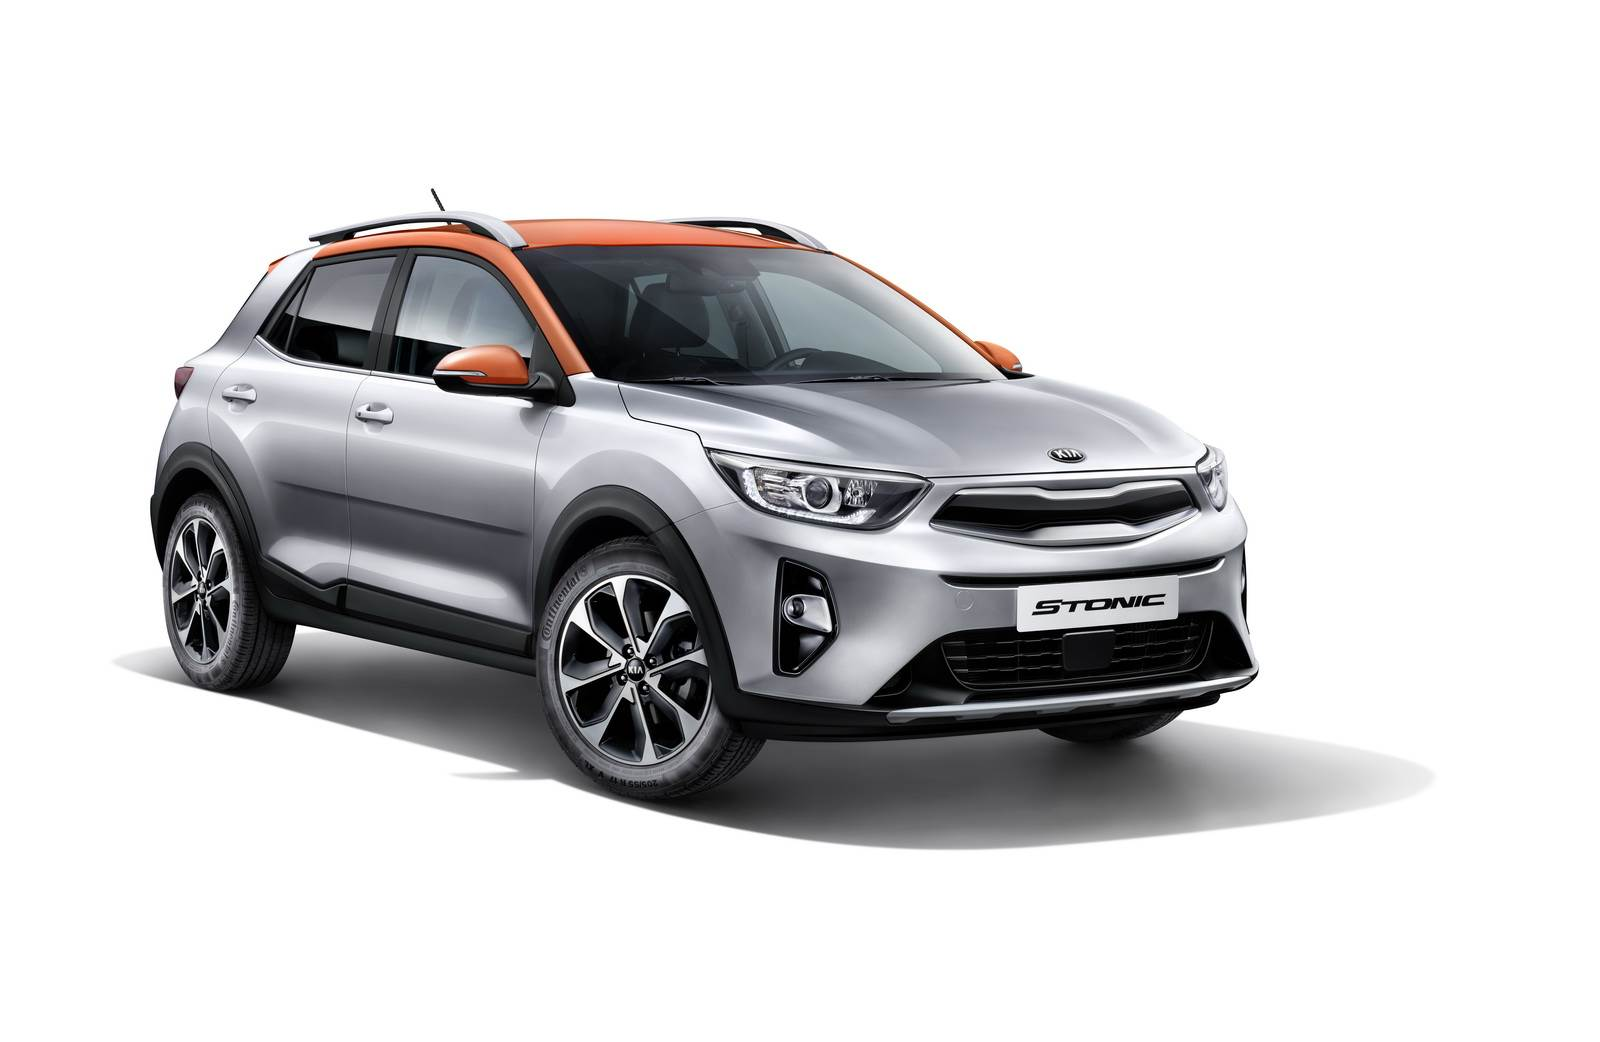 Kia Stonic crossover fits well for India, says design head